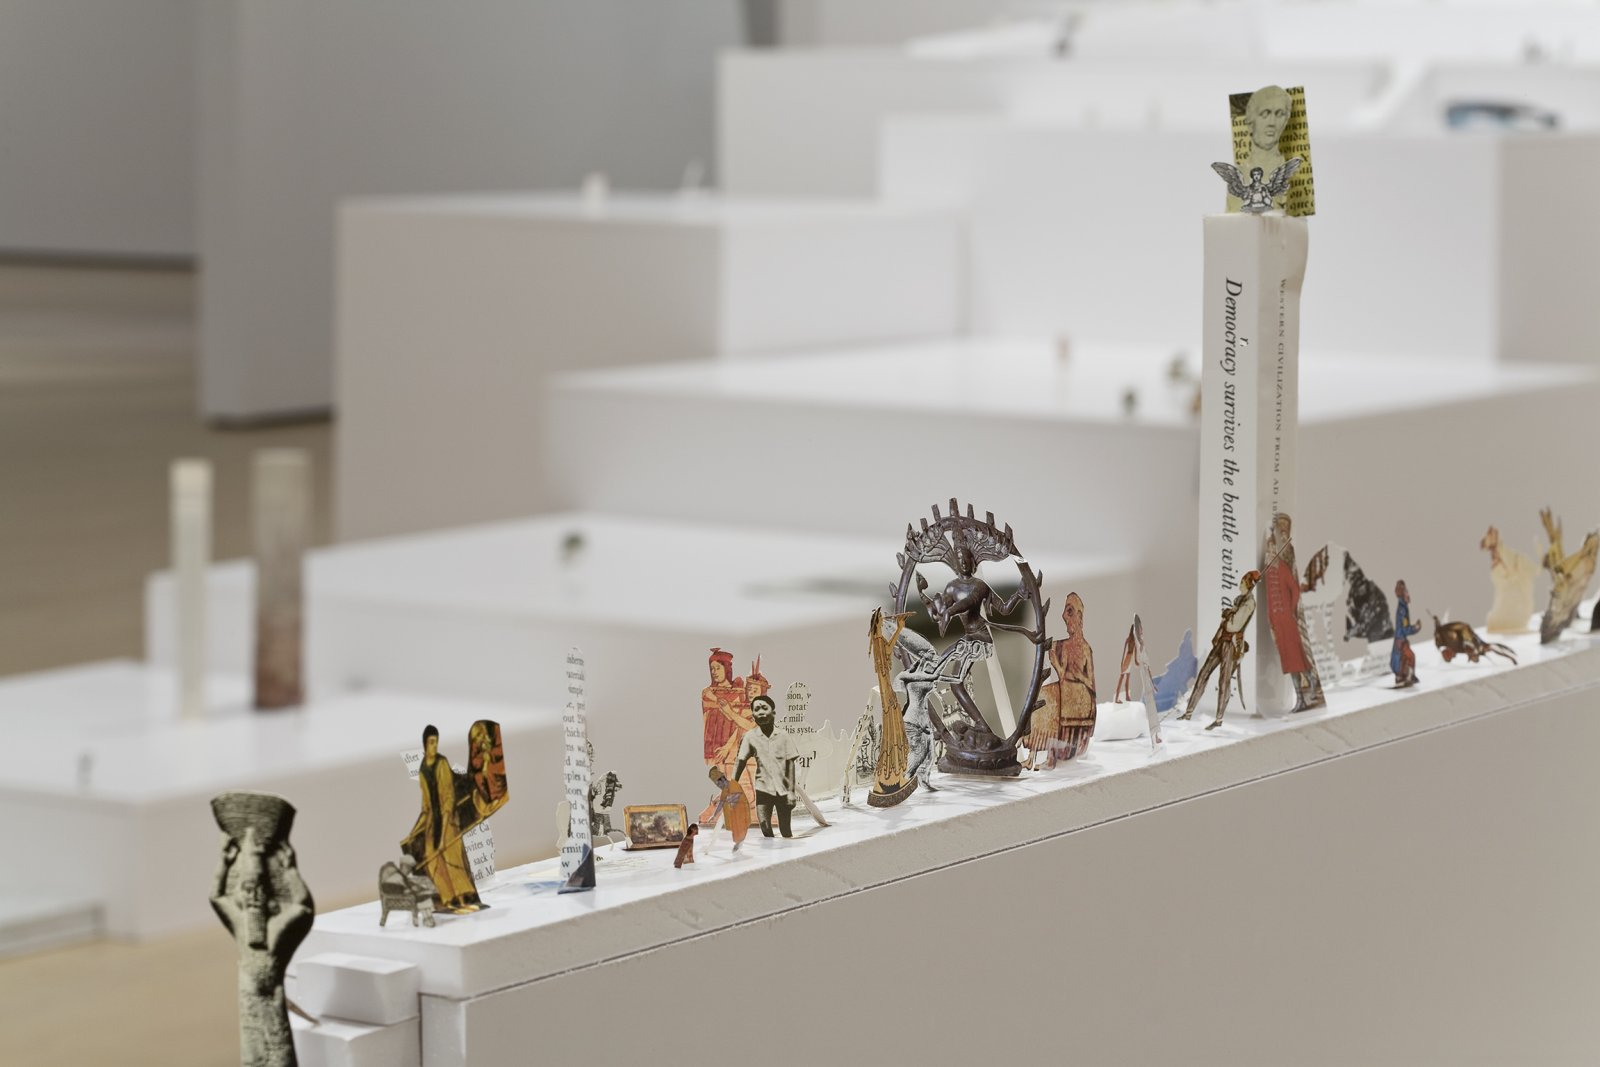 Geoffrey Farmer, The Last Two Million Years, 2007, foamcore plinths, perspex frames and cutouts from selected pages of the history book The Last Two Million Years, dimensions variable. Installation view, Musée d'art contemporain de Montréal, 2008